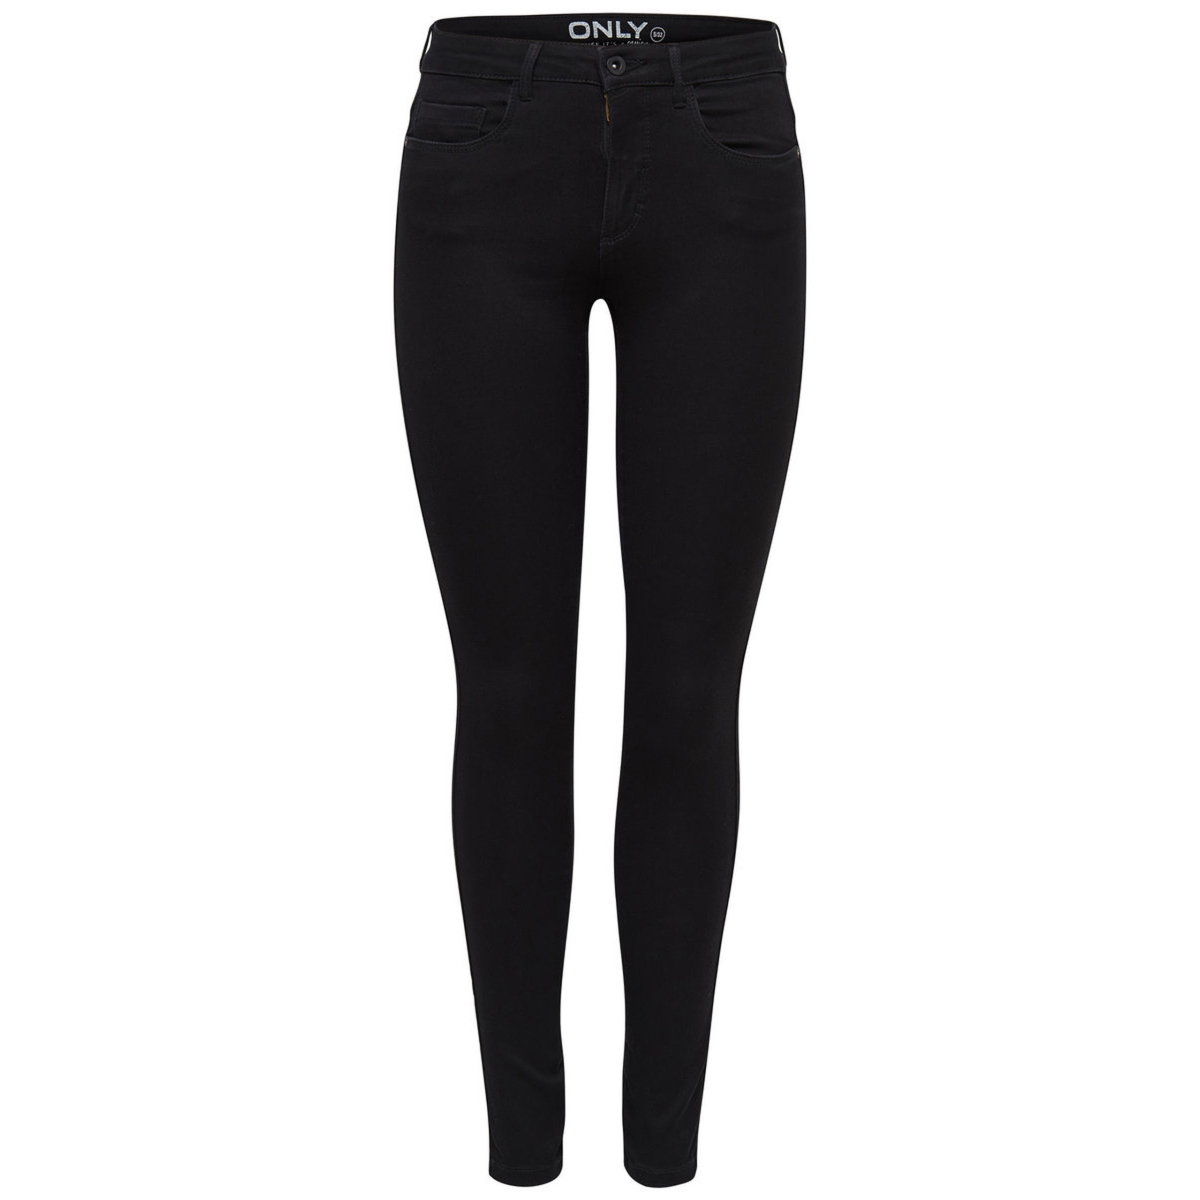 royal reg skinny jeans pim600 15092650 only jeans black